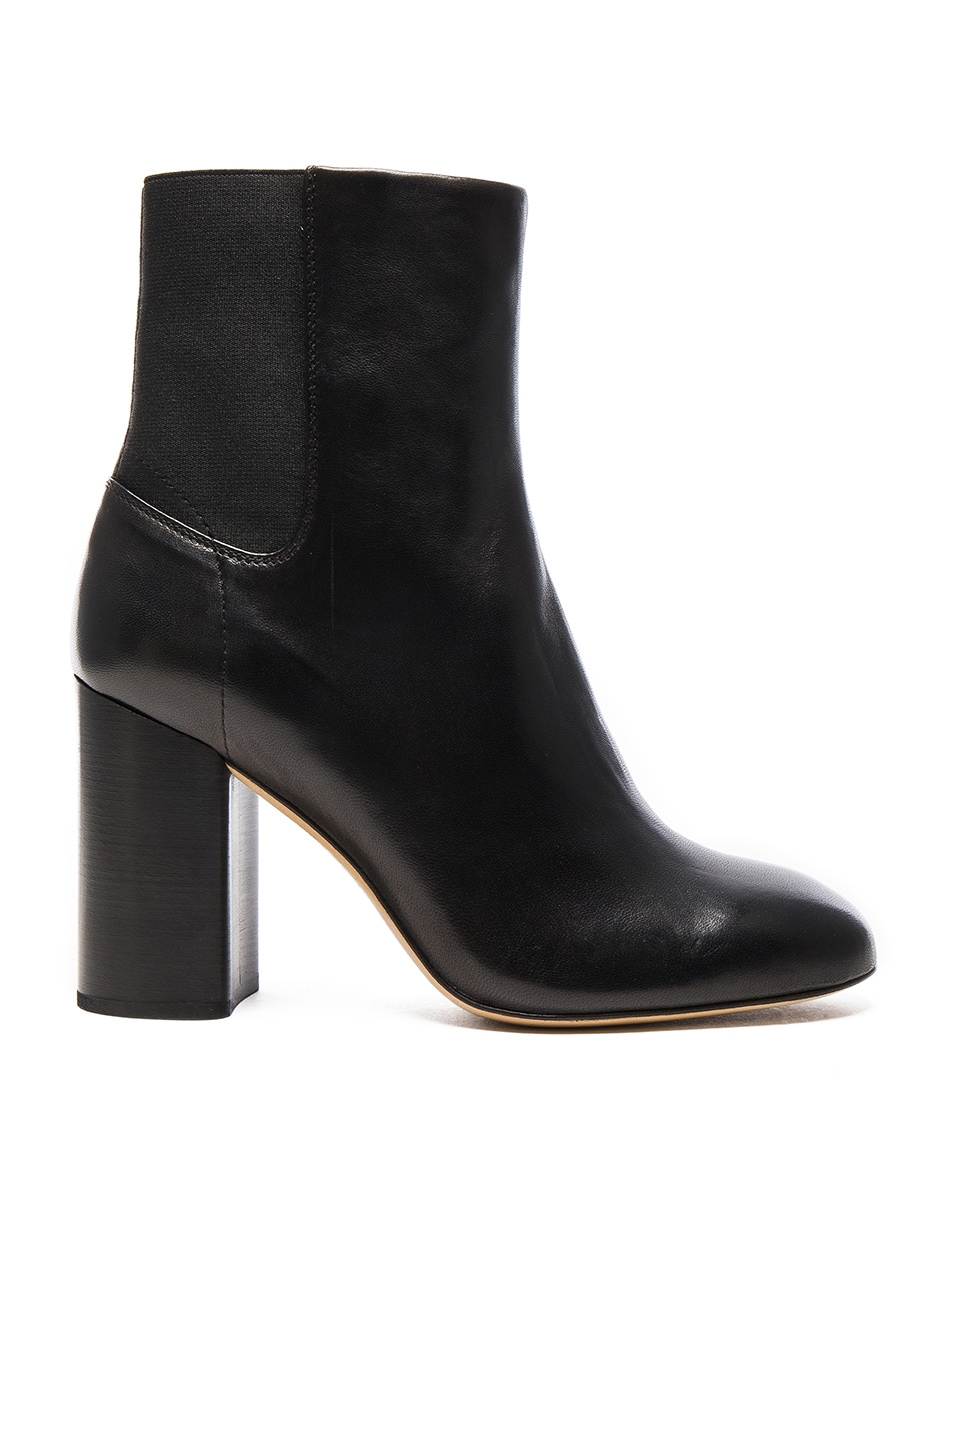 Image 1 of Rag & Bone Leather Agnes Booties in Black